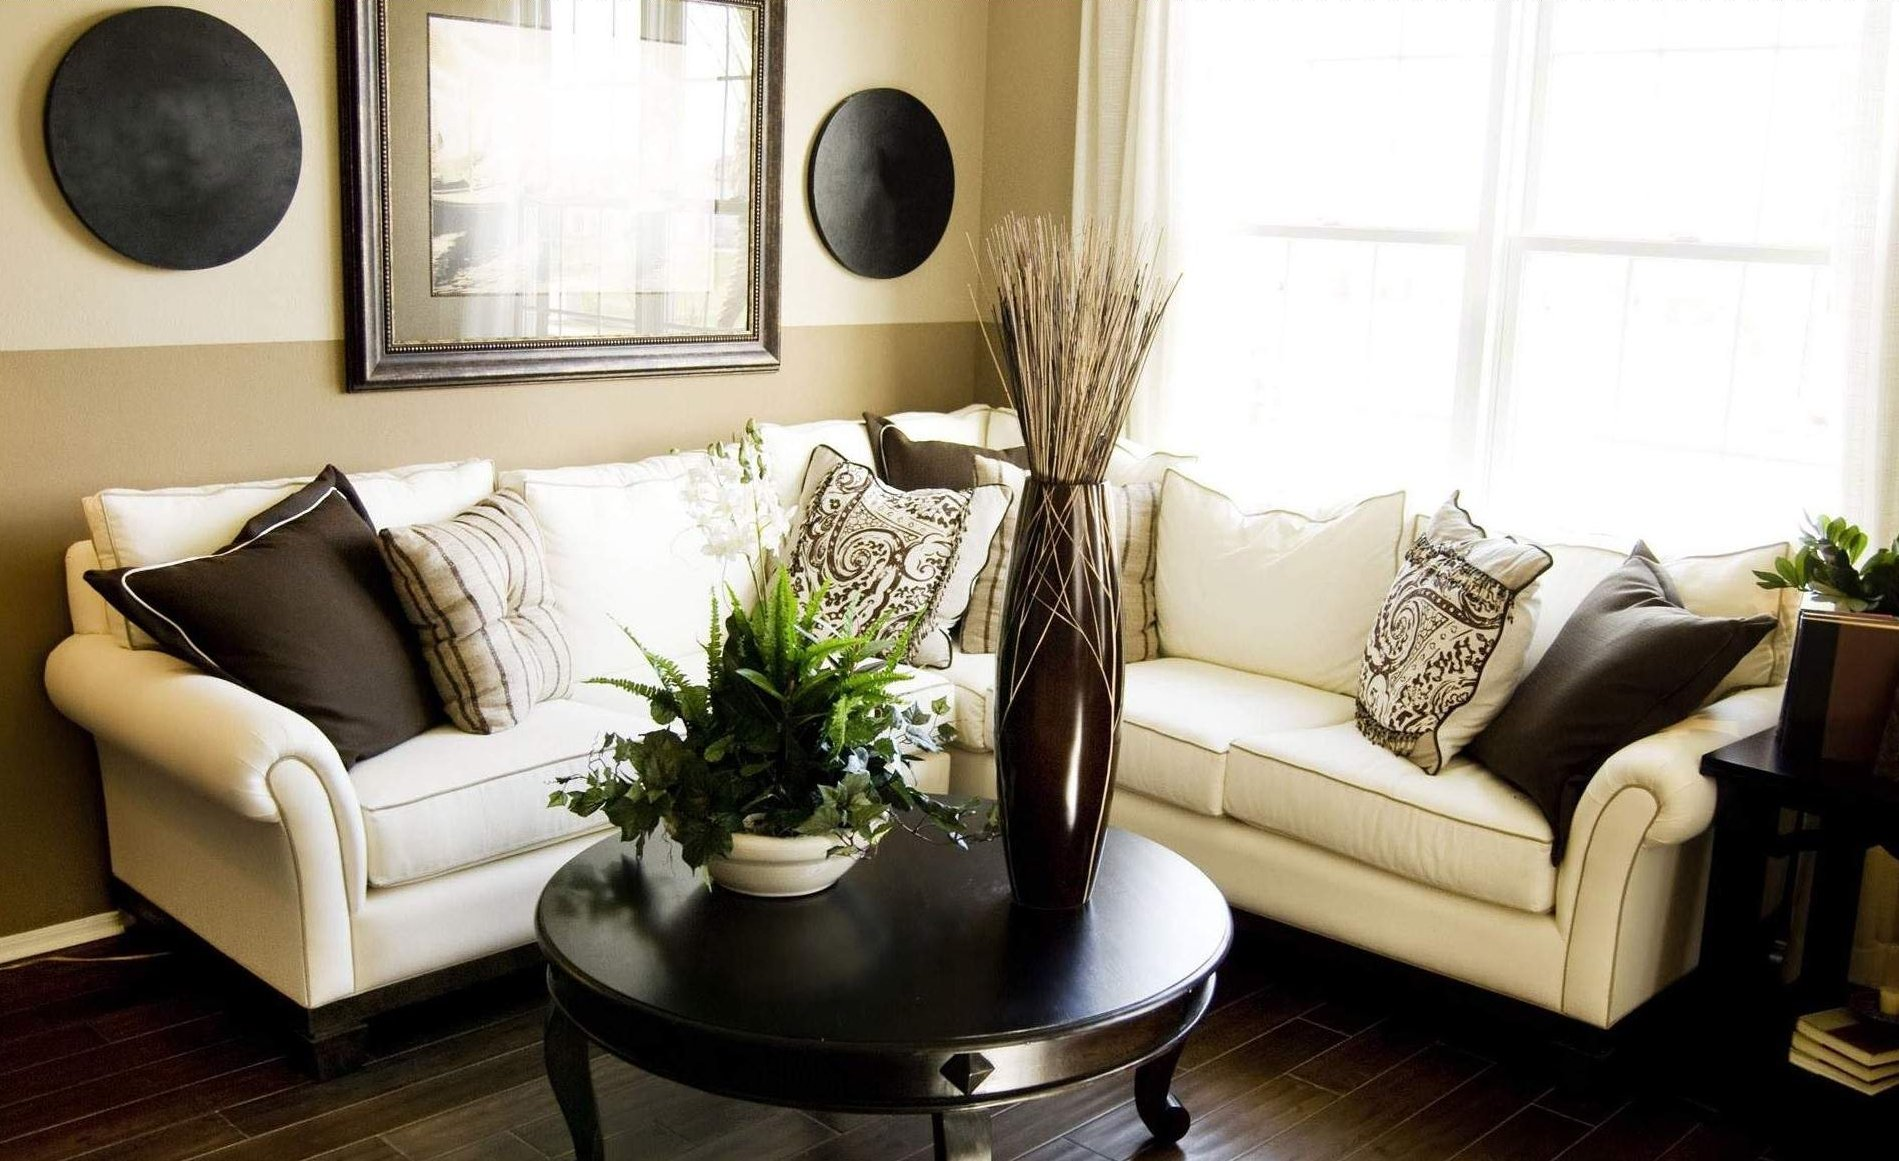 10 Attractive Decorating Ideas For Small Living Room decorating a small living room ideas 1000823 high definition elegant 2020